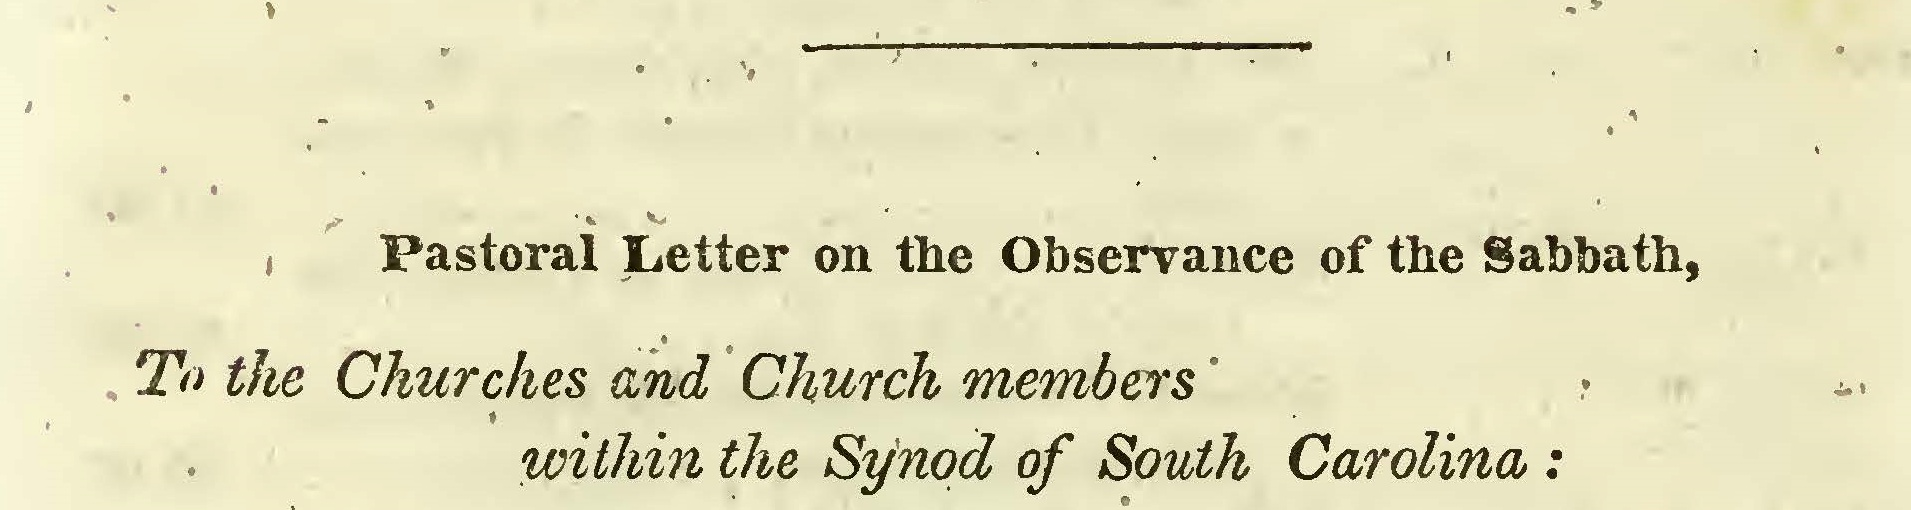 Palmer, Benjamin Morgan, Pastoral Letter on the Observance of the Sabbath Title Page.jpg